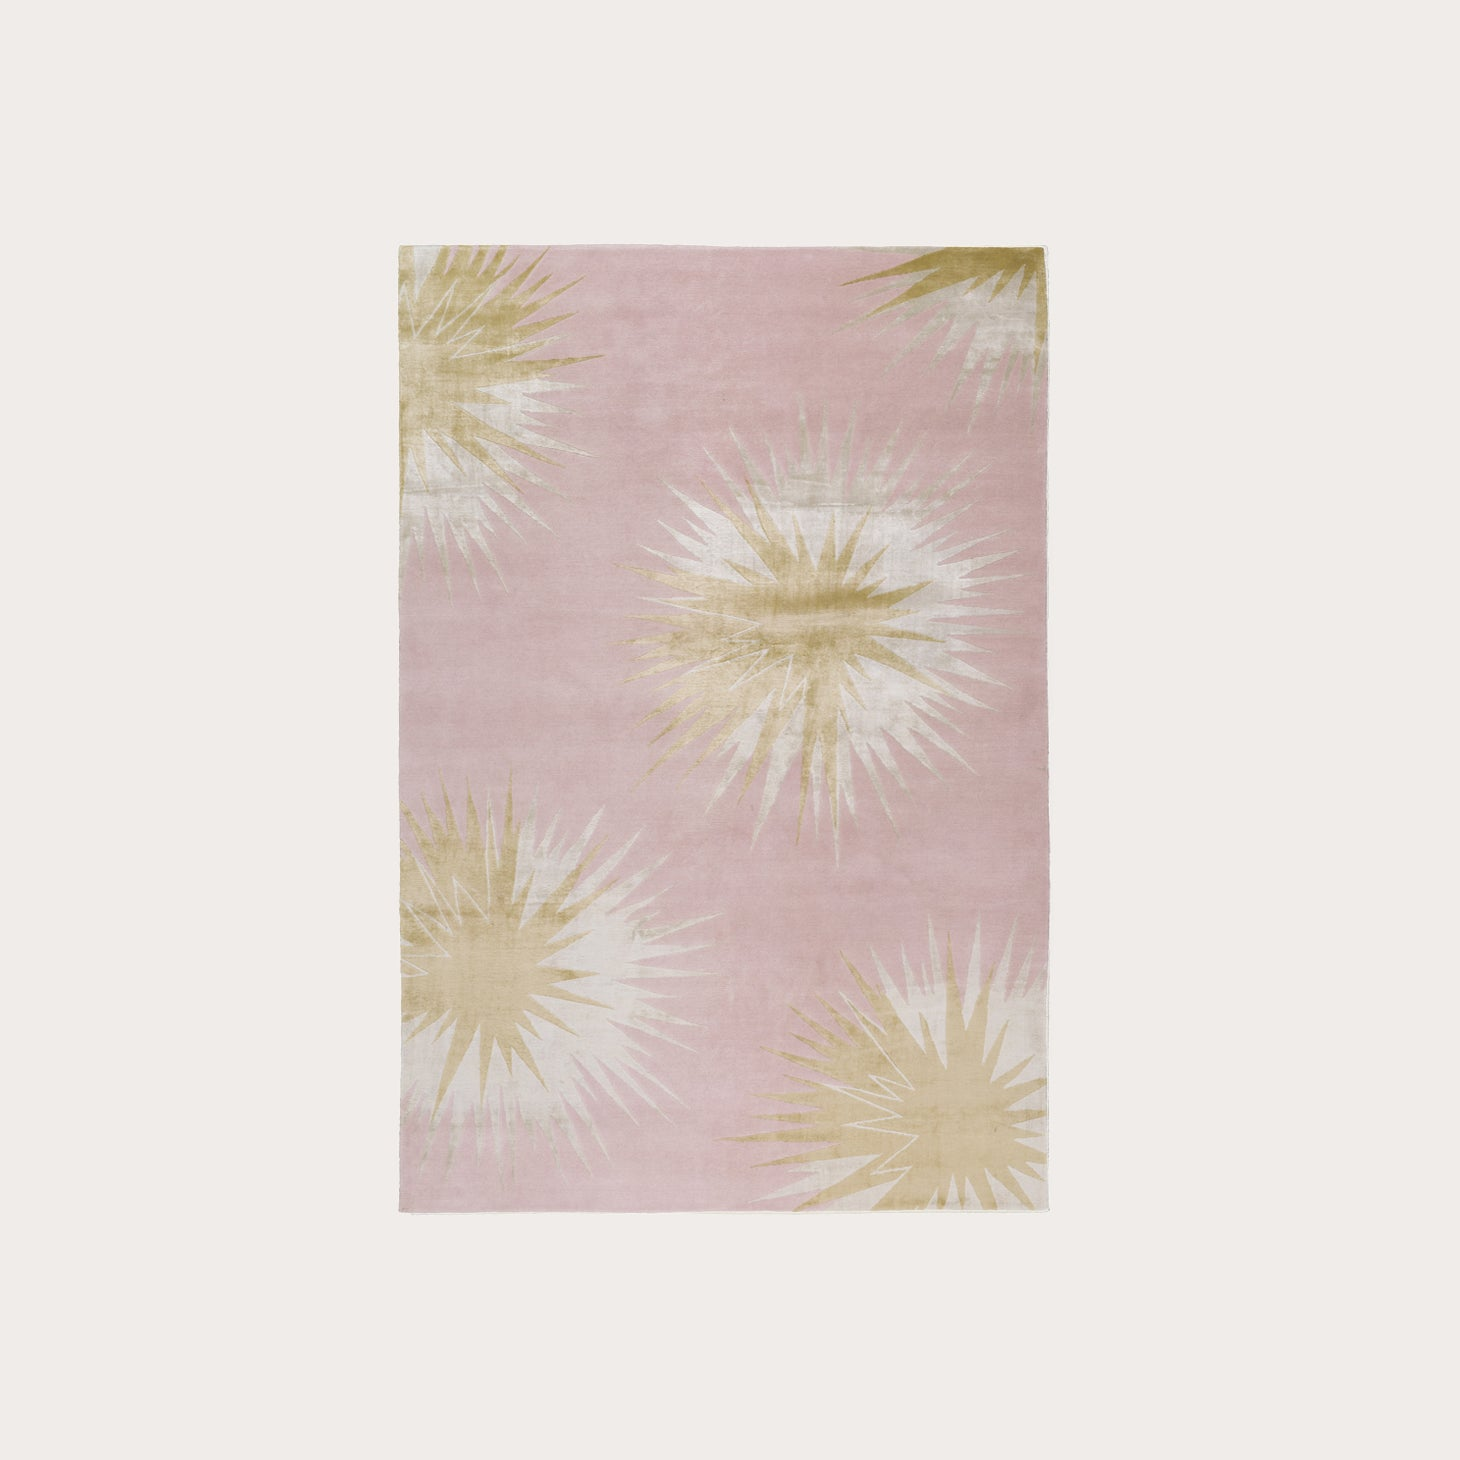 Thistle Gold Floor Coverings Vivienne Westwood Designer Furniture Sku: 391-150-11250